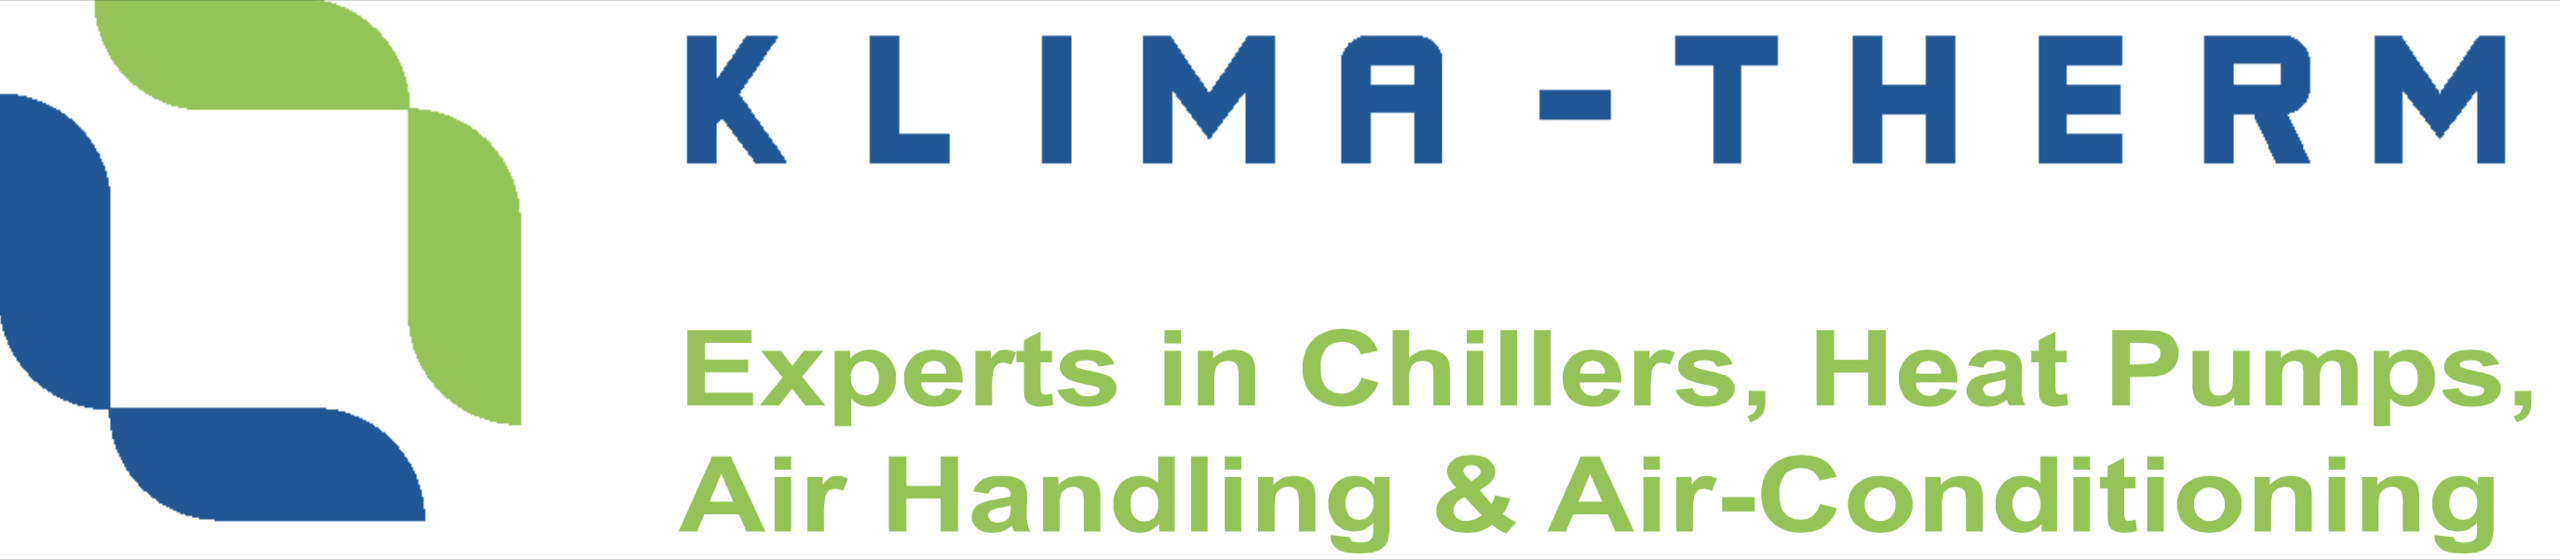 Klima-therm Ltd  logo